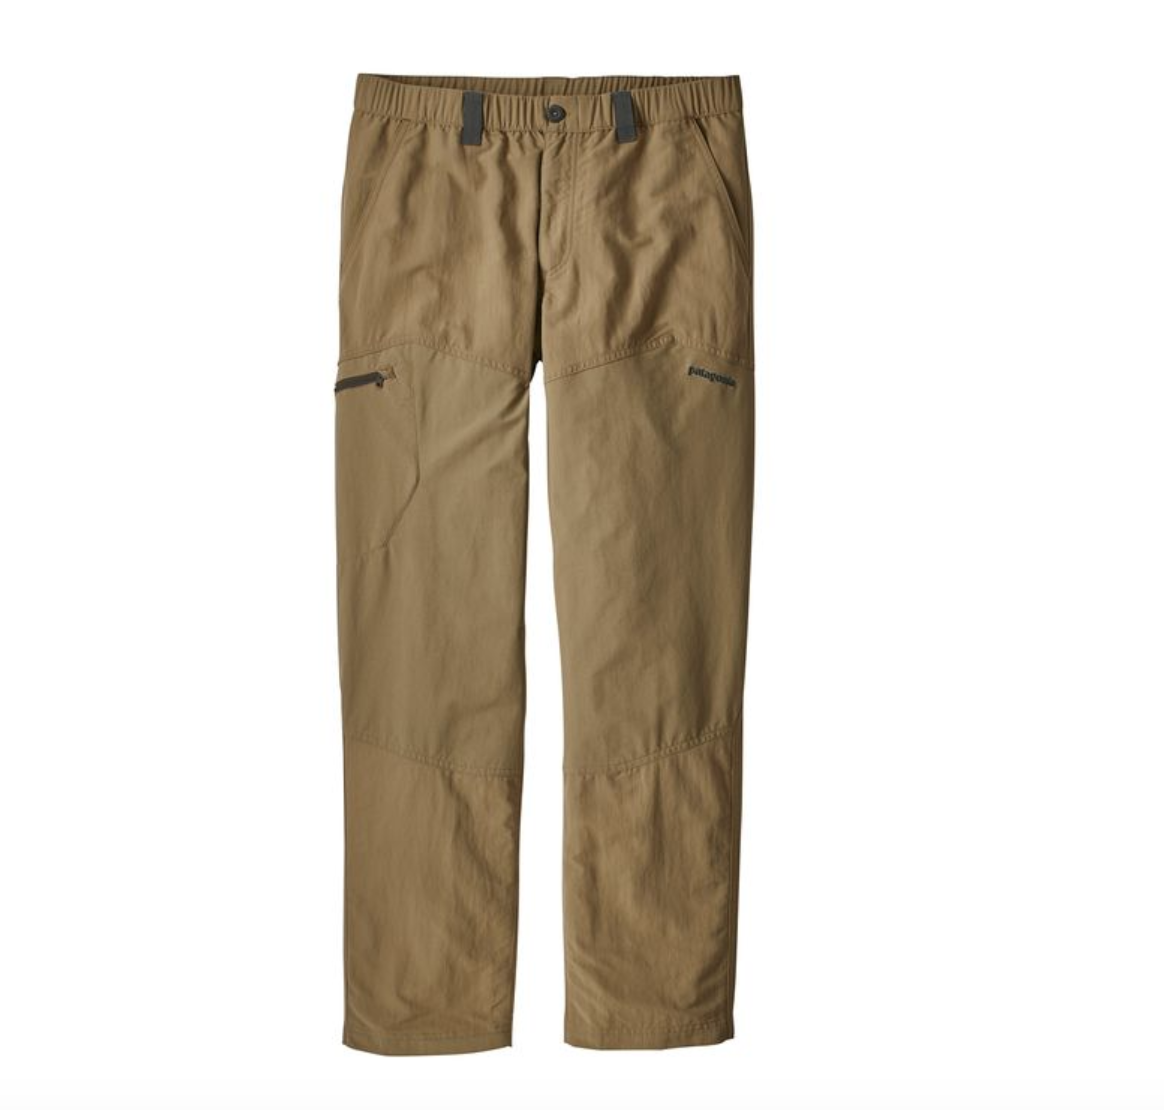 2019 MENS GUIDEWATER II PANTS